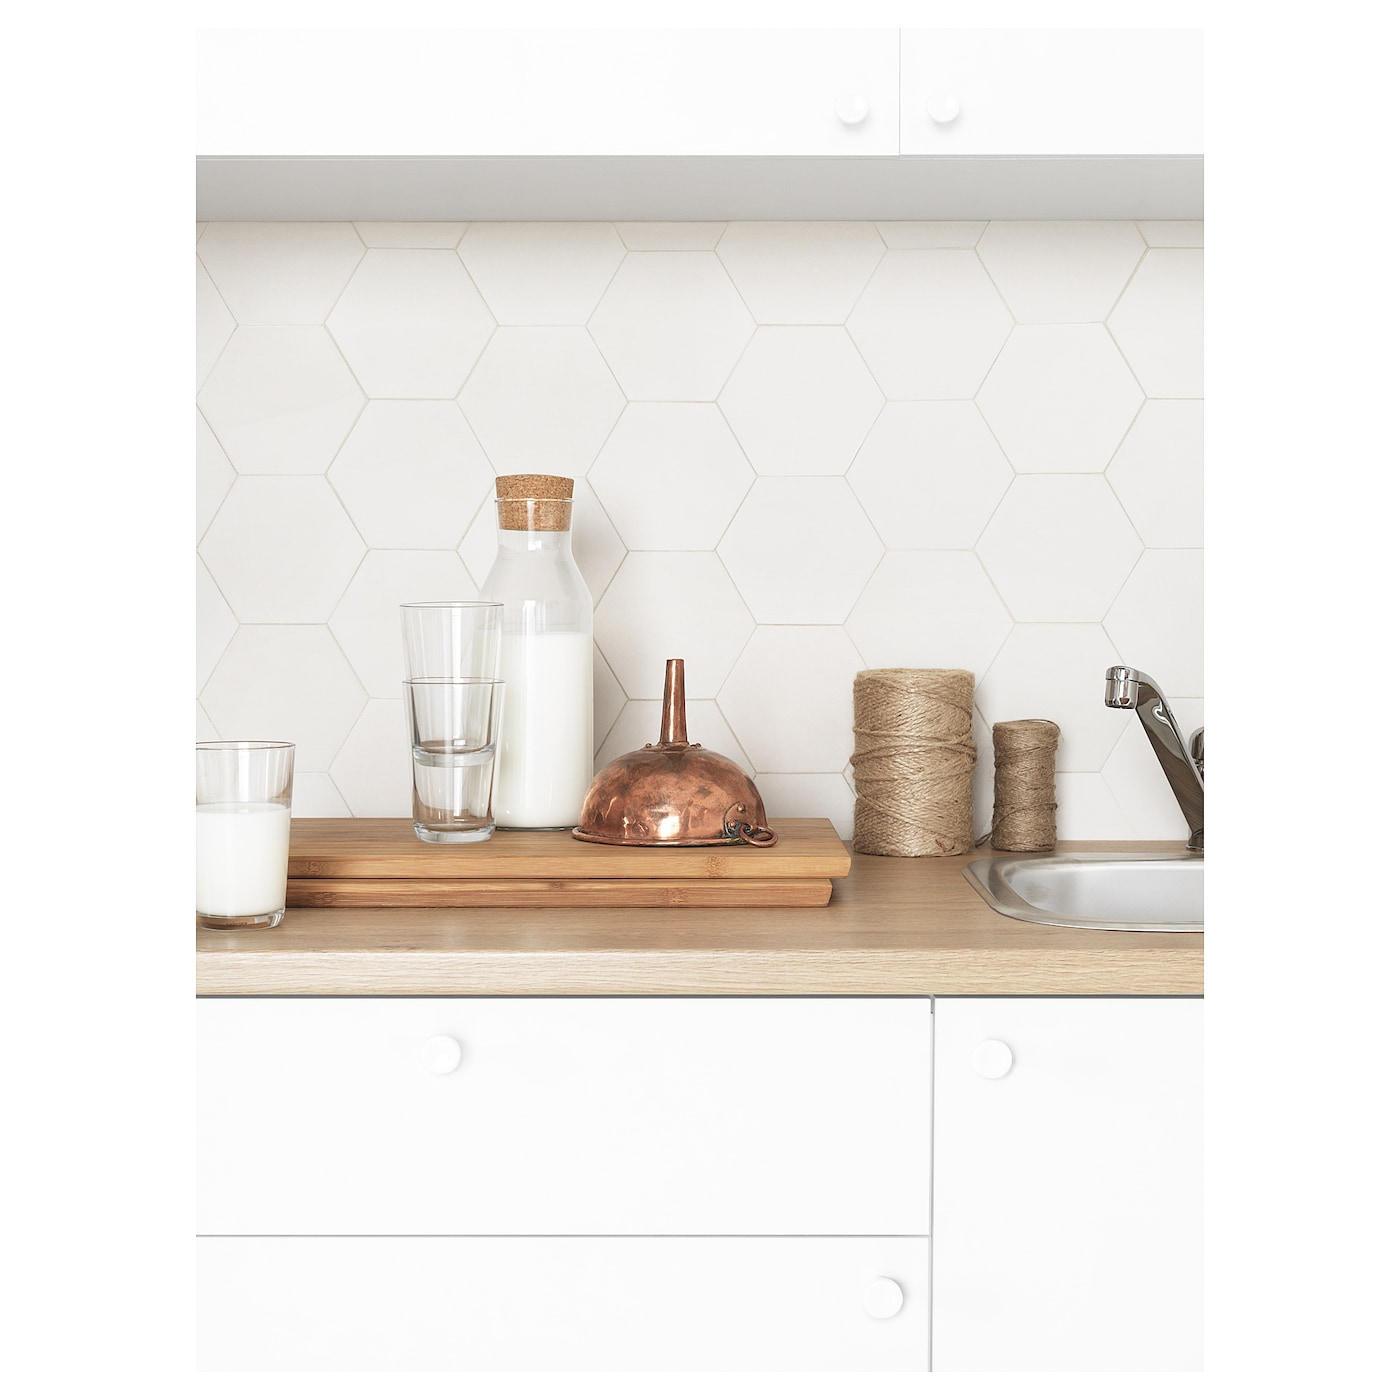 IKEA KNOXHULT kitchen Only to be used with glass ceramic hob or gas hob.